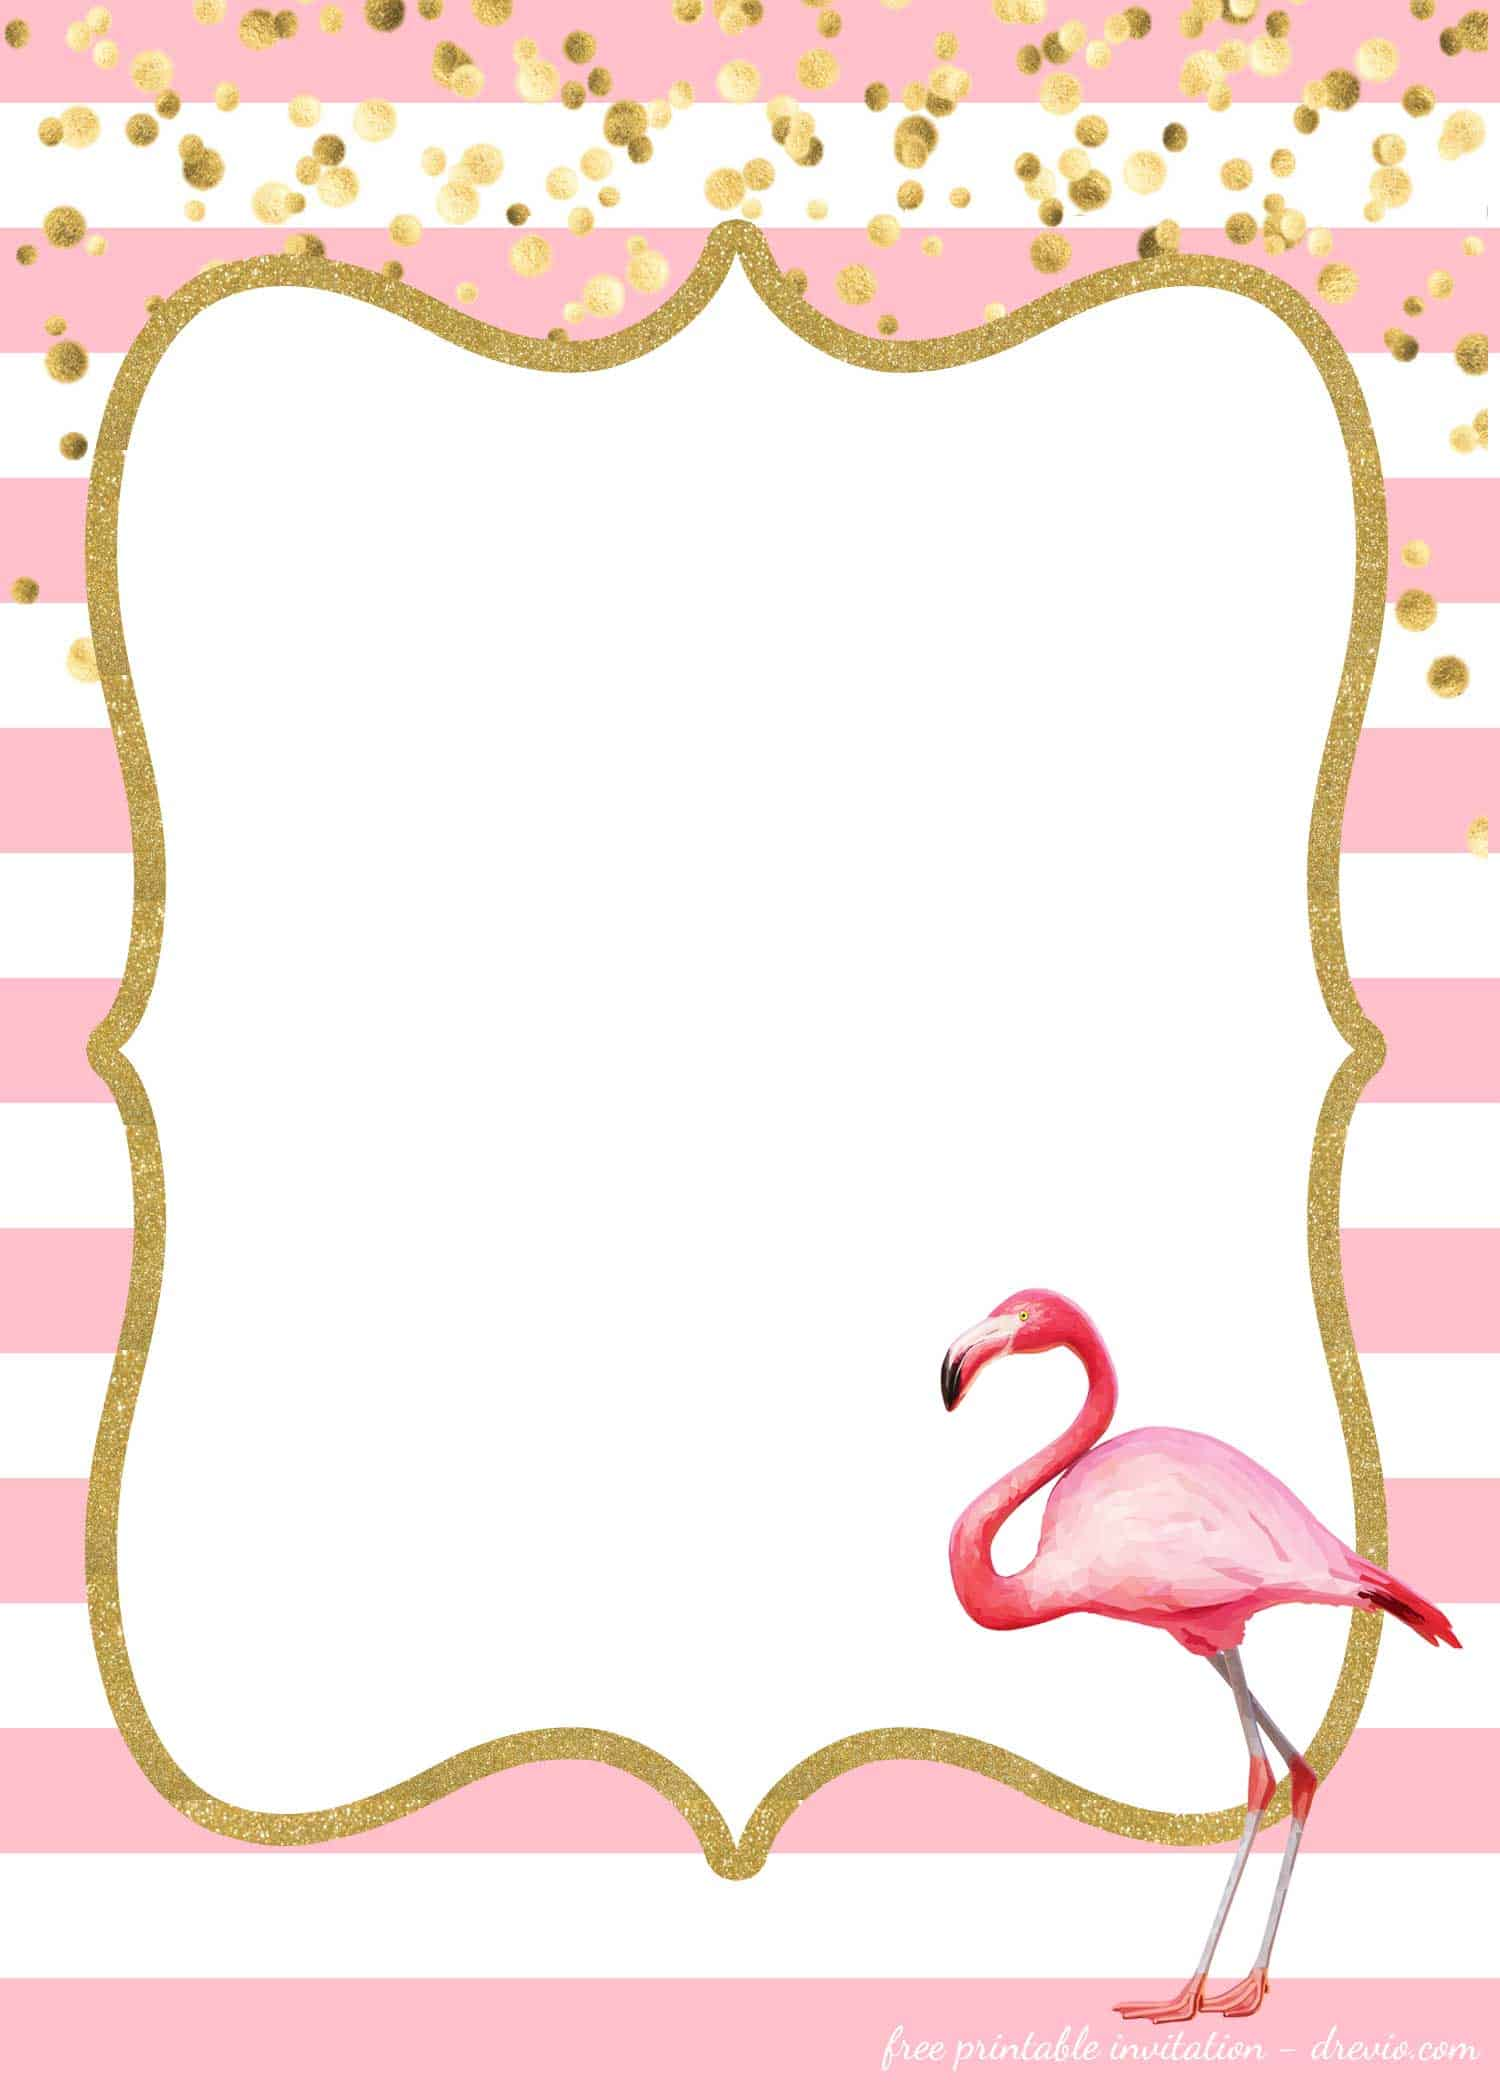 photo about Flamingo Printable named Do-it-yourself Flamingo Get together- A Extensive Consultant - do-it-yourself Notion